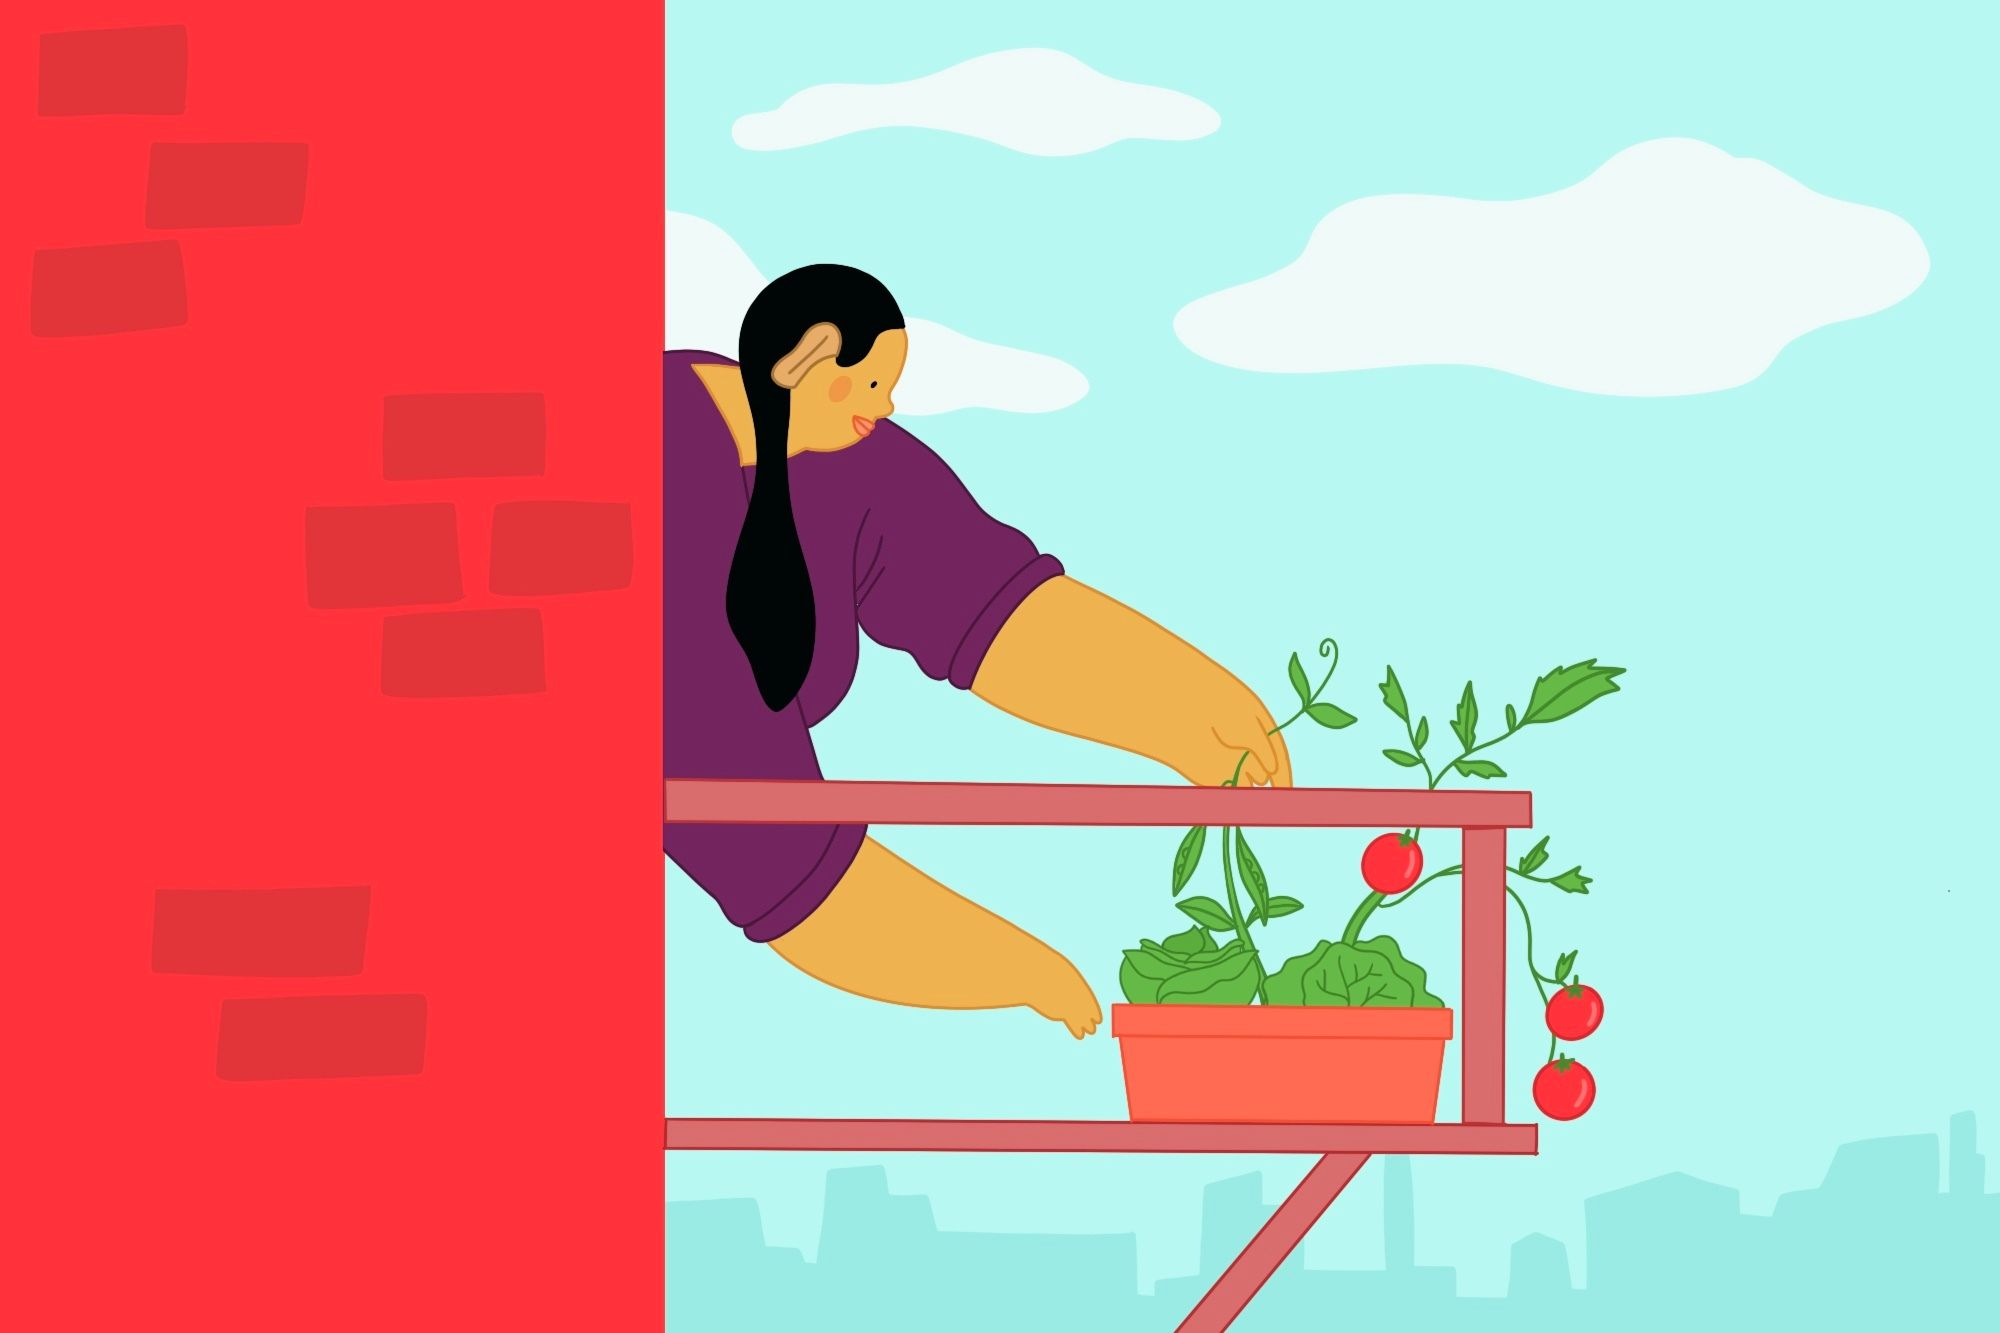 illustration of a woman tending plants growing in pots on a balcony